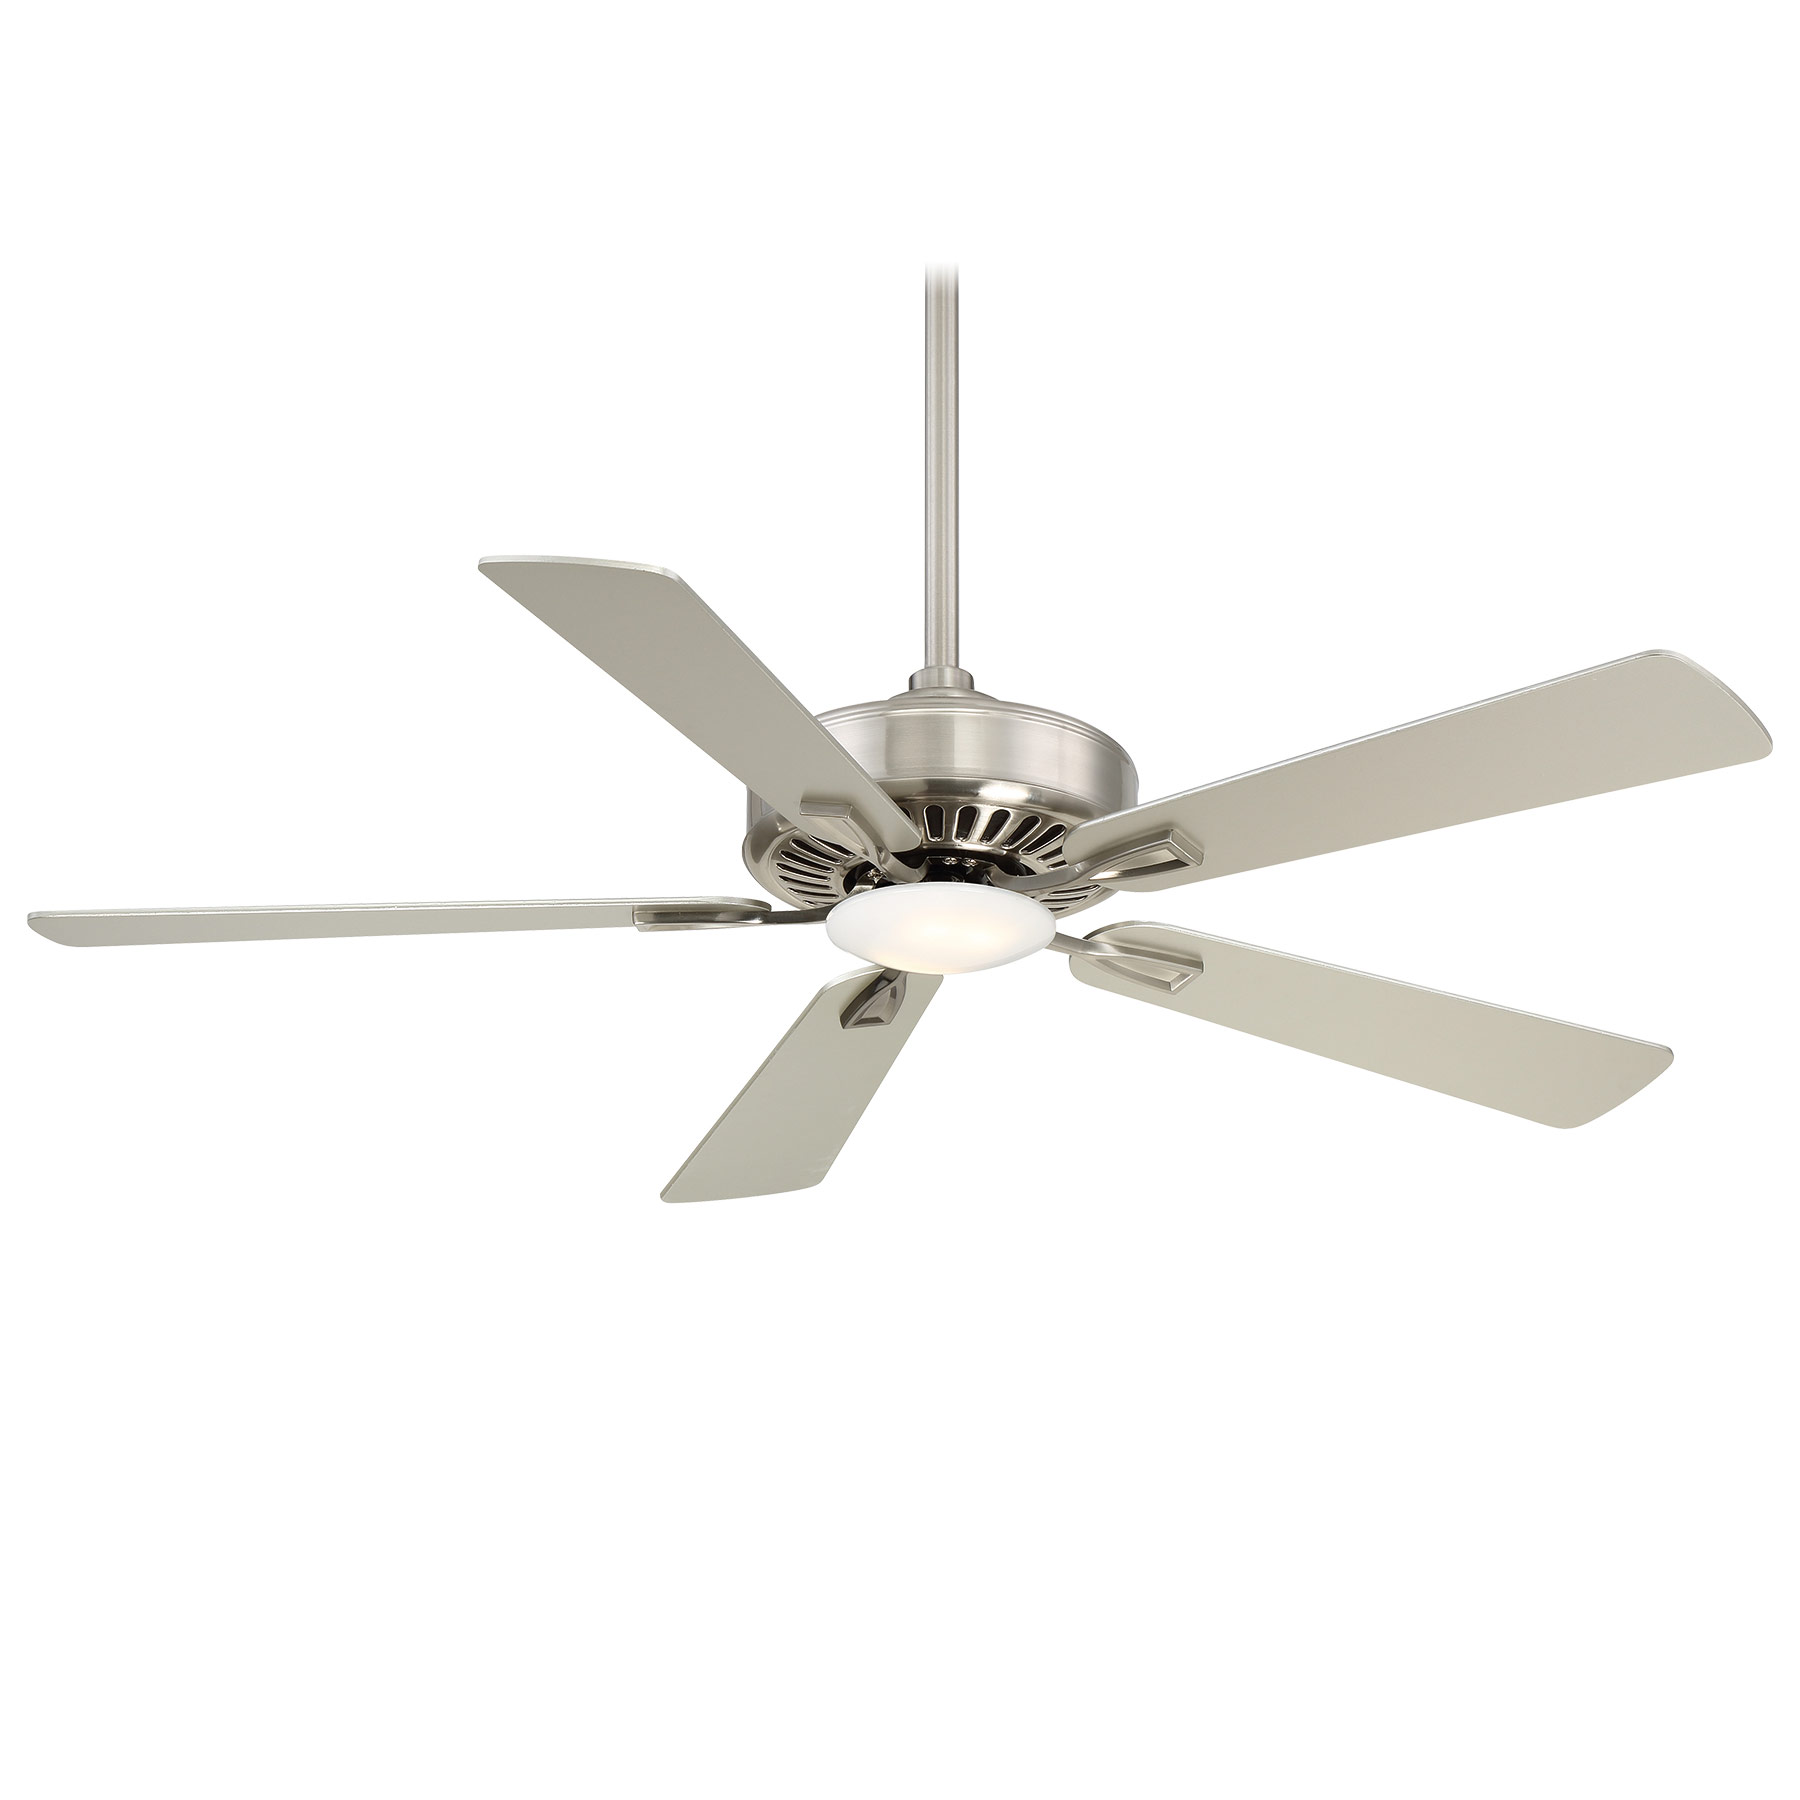 aire light with fans ceiling cf fan by minka craftsman